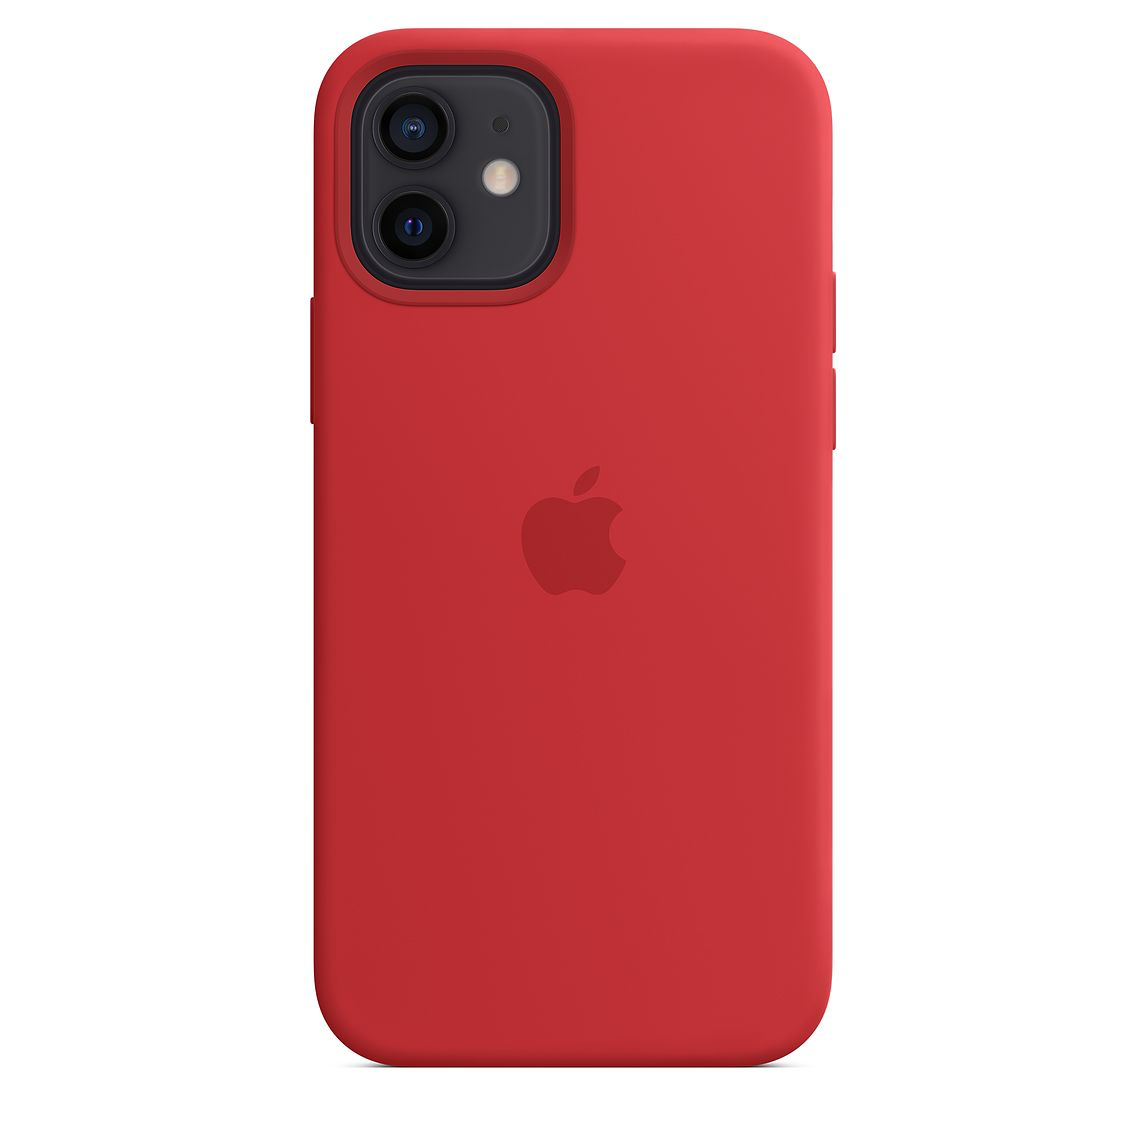 Apple iPhone 12/12Pro Silicone Case with MagSafe (PRODUCT)RED